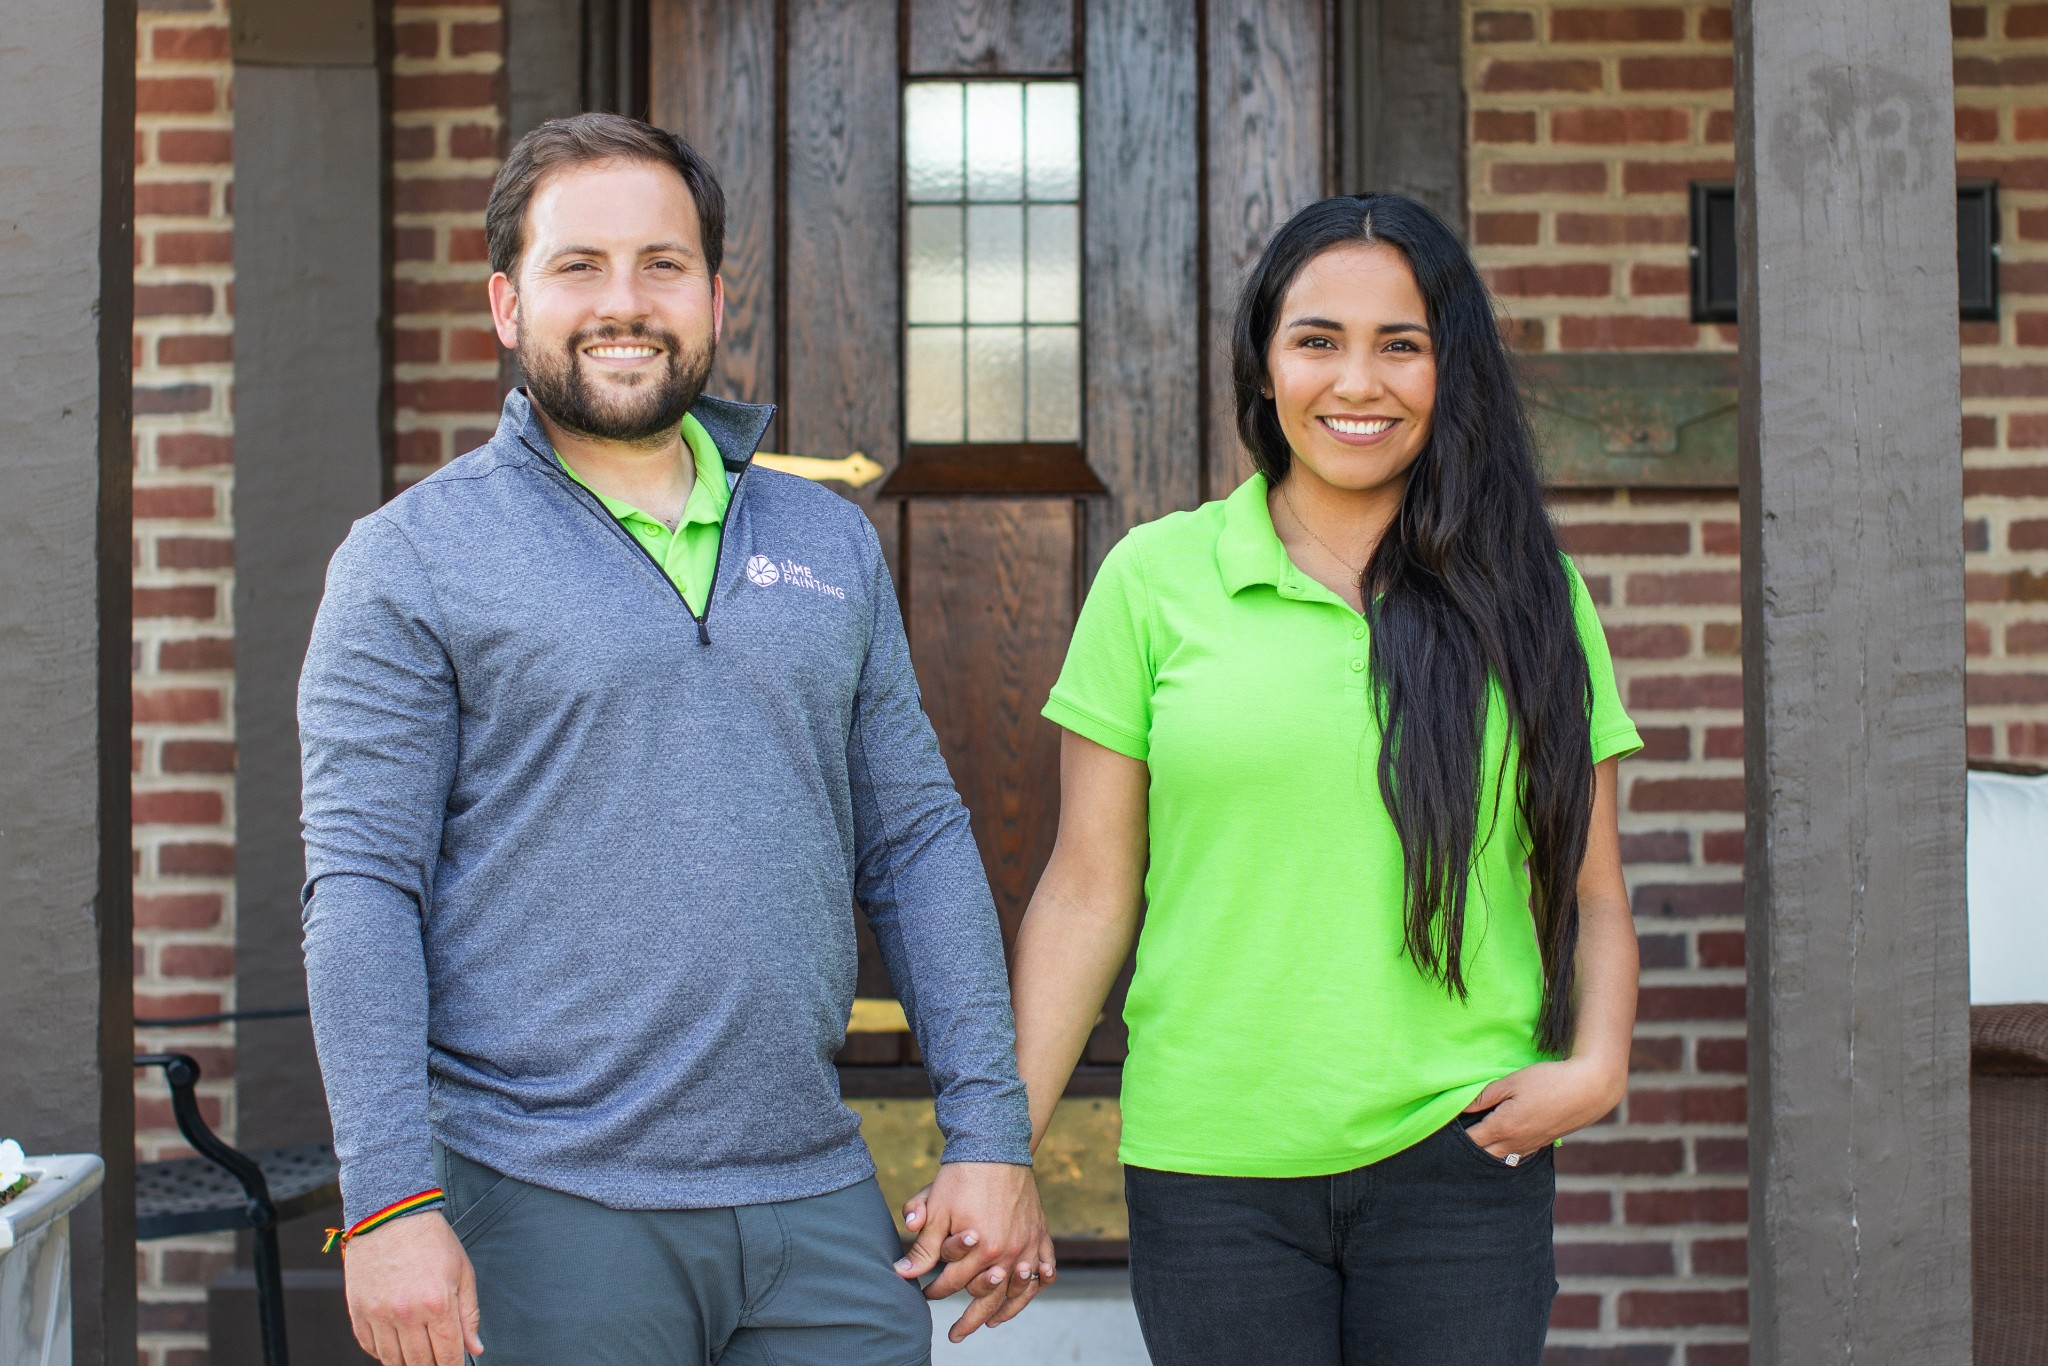 home-painting-advisors-in-st-louis-michael-and-daiba-hanley